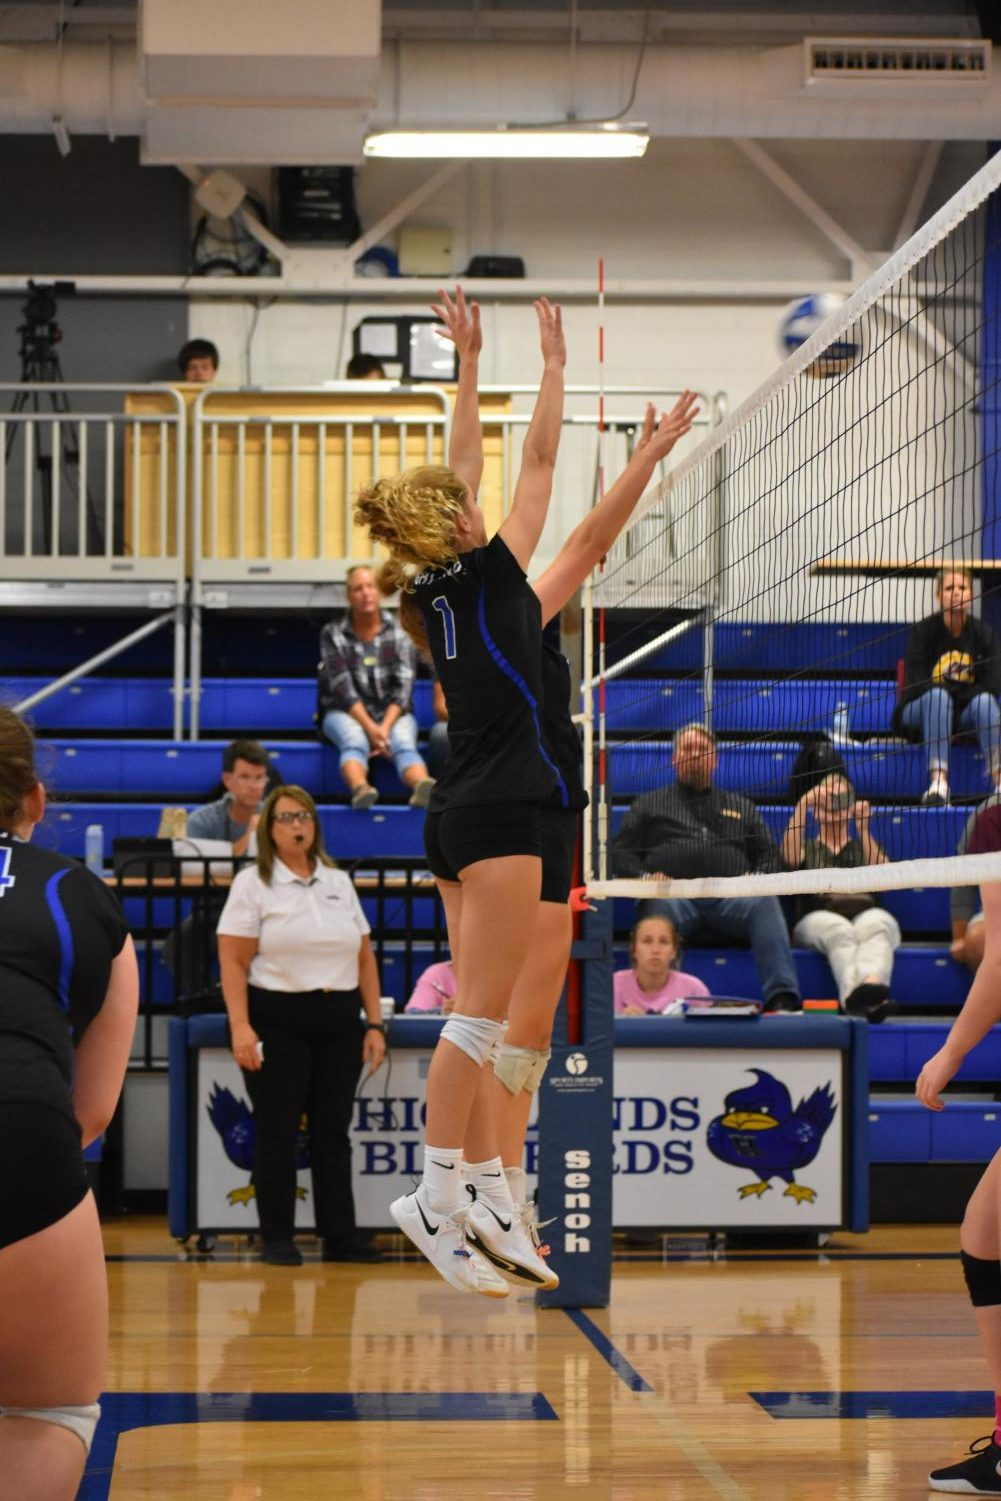 Sophomore Lilly Koenig blocks the ball.